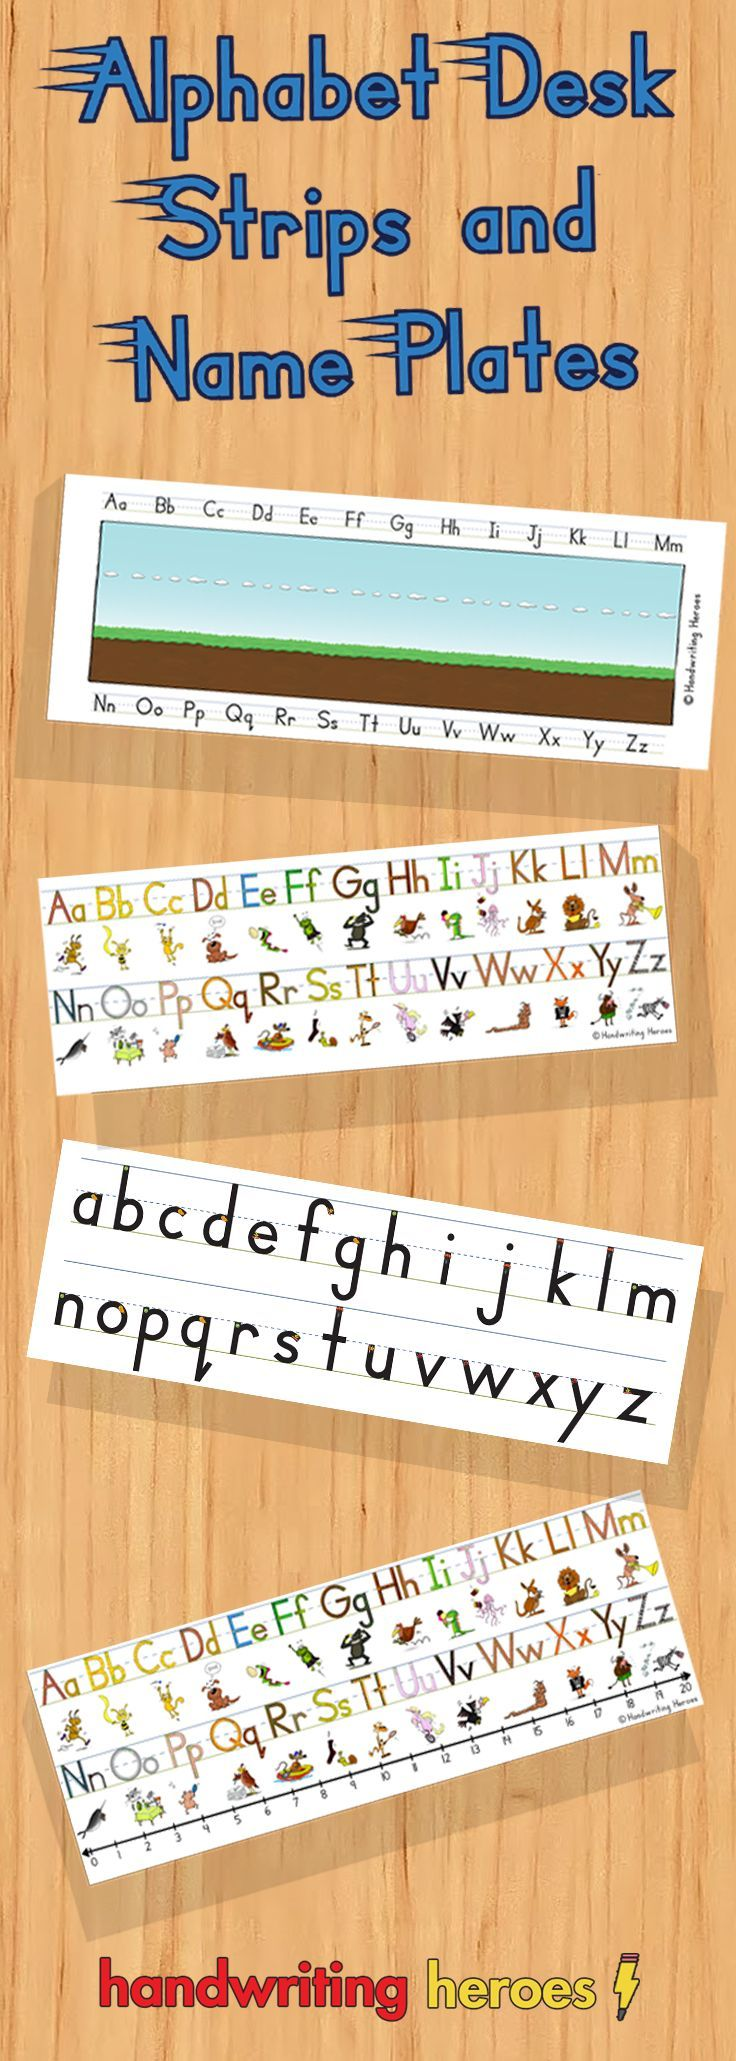 School Desk Strips And Name Plates Appytherapy Handwriting Analysis Learn Handwriting Handwriting Activities [ 2061 x 736 Pixel ]